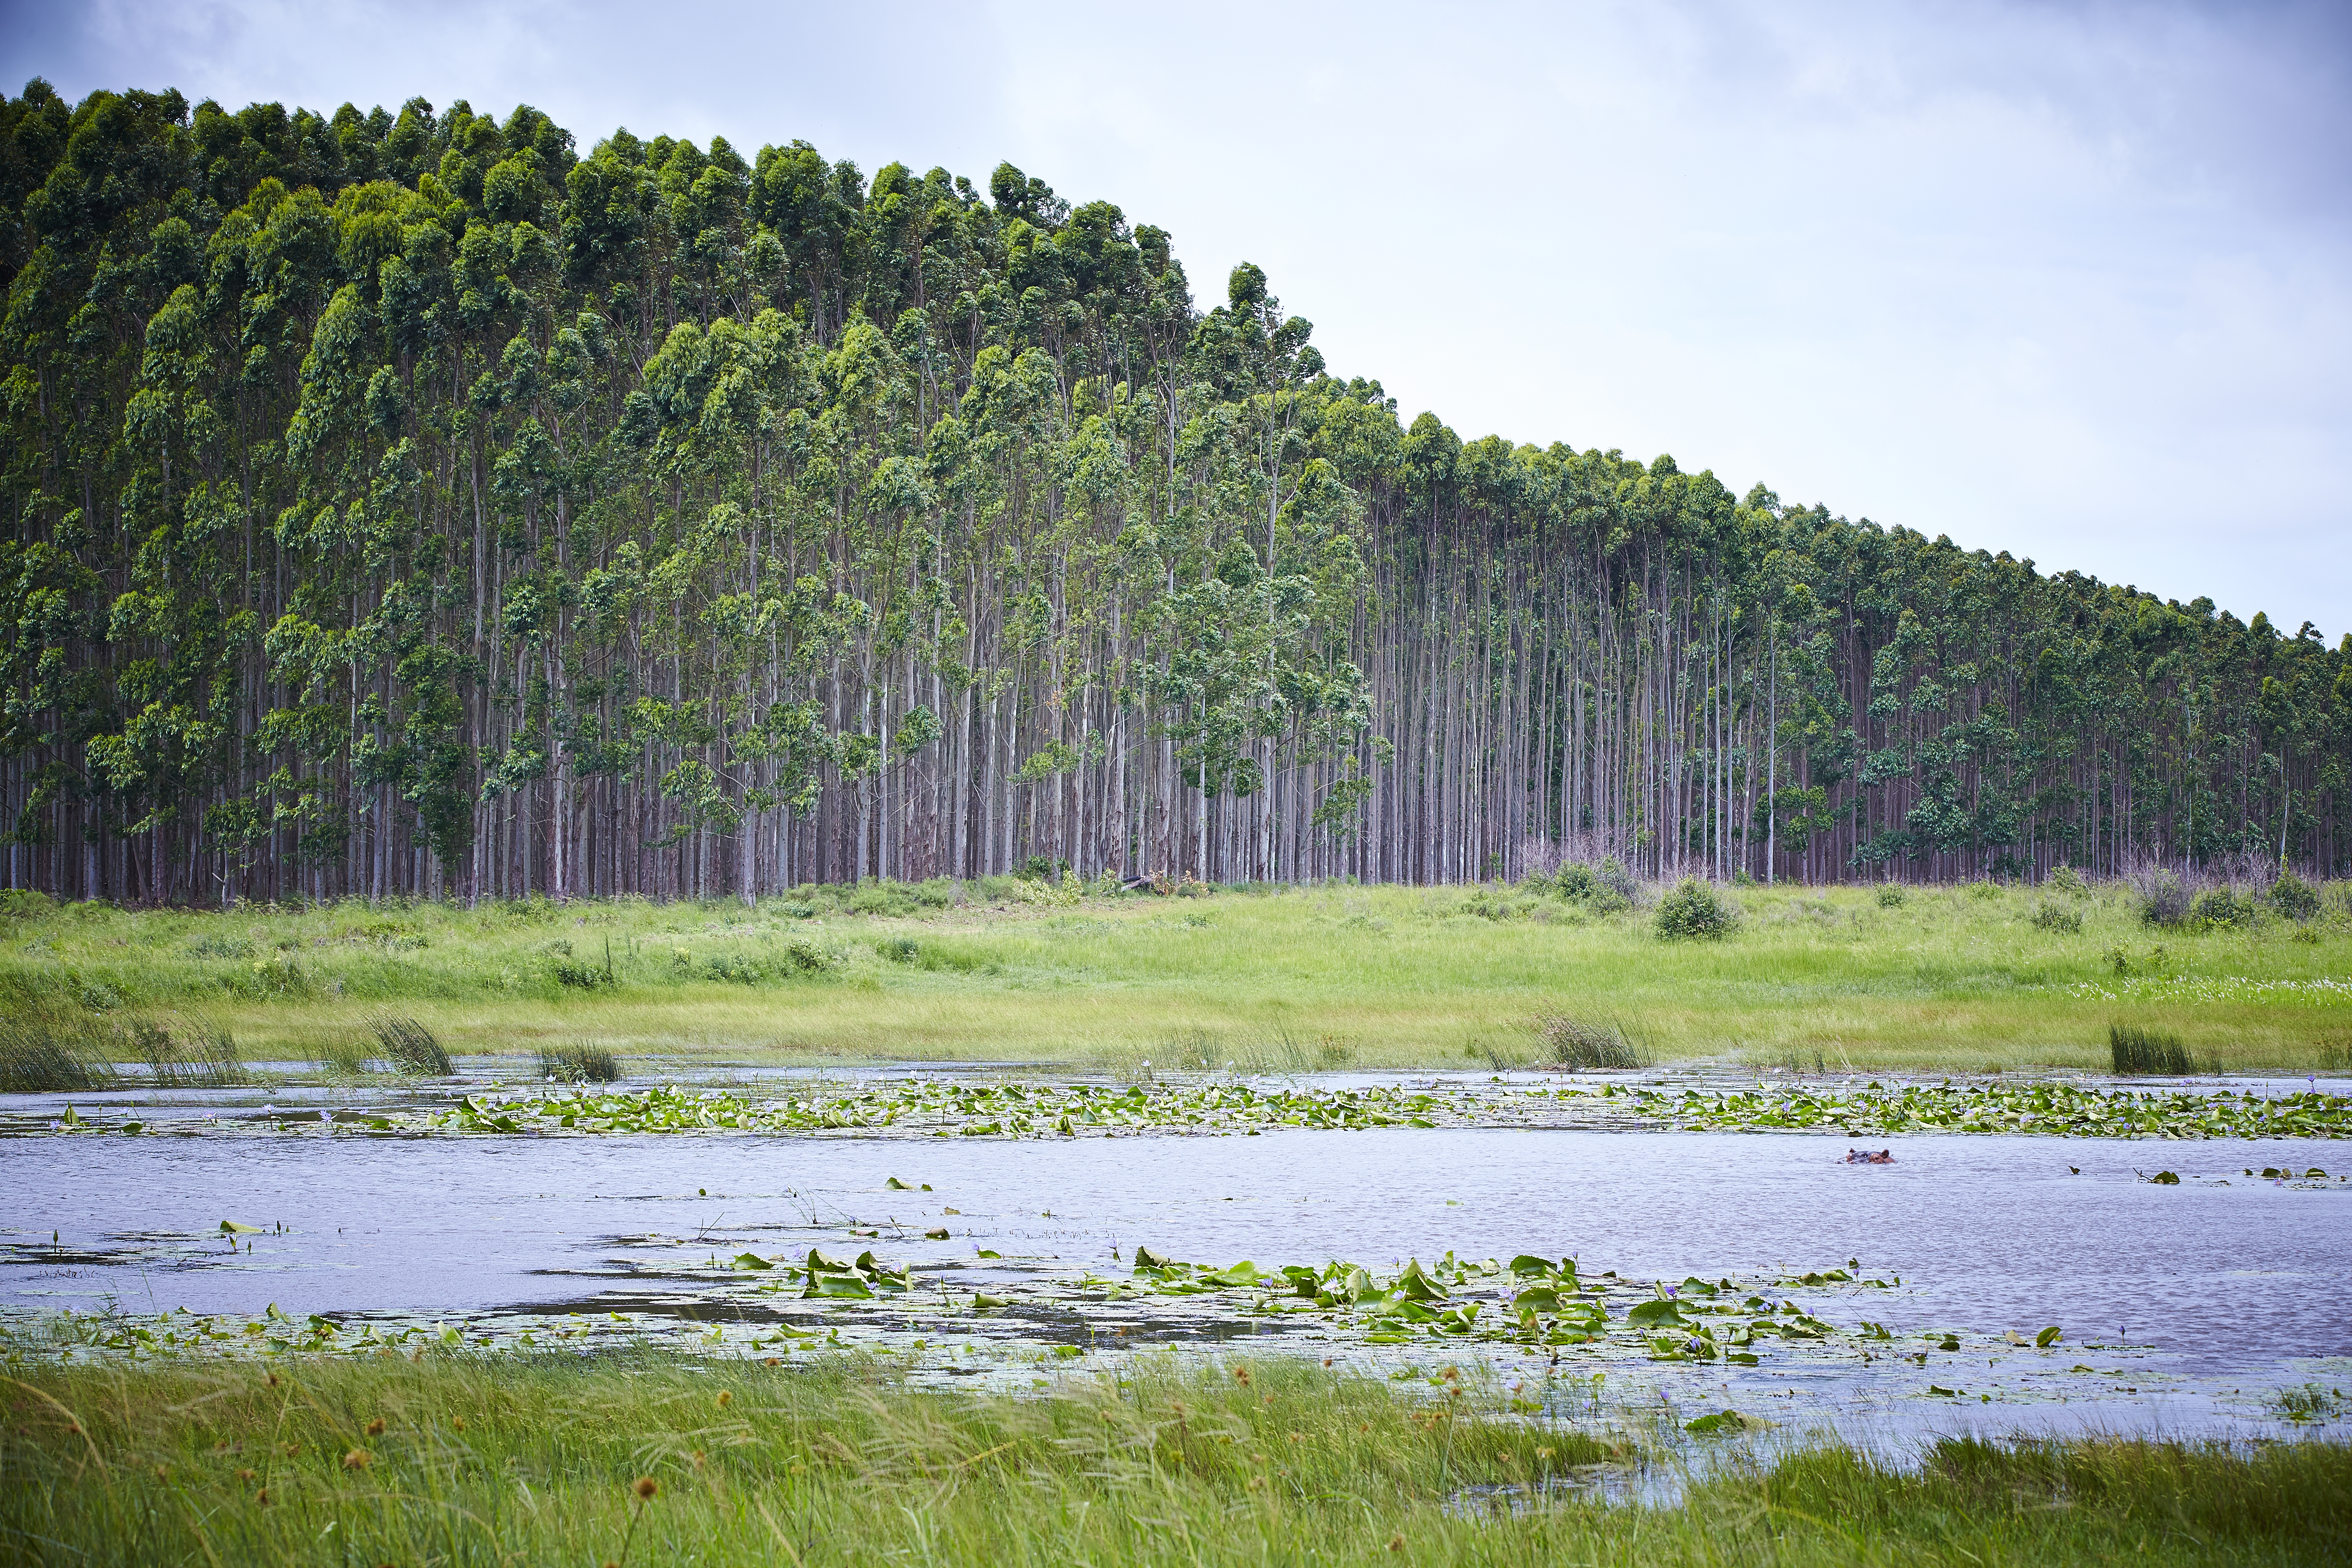 Mondi_Wetland conservation, South Africa